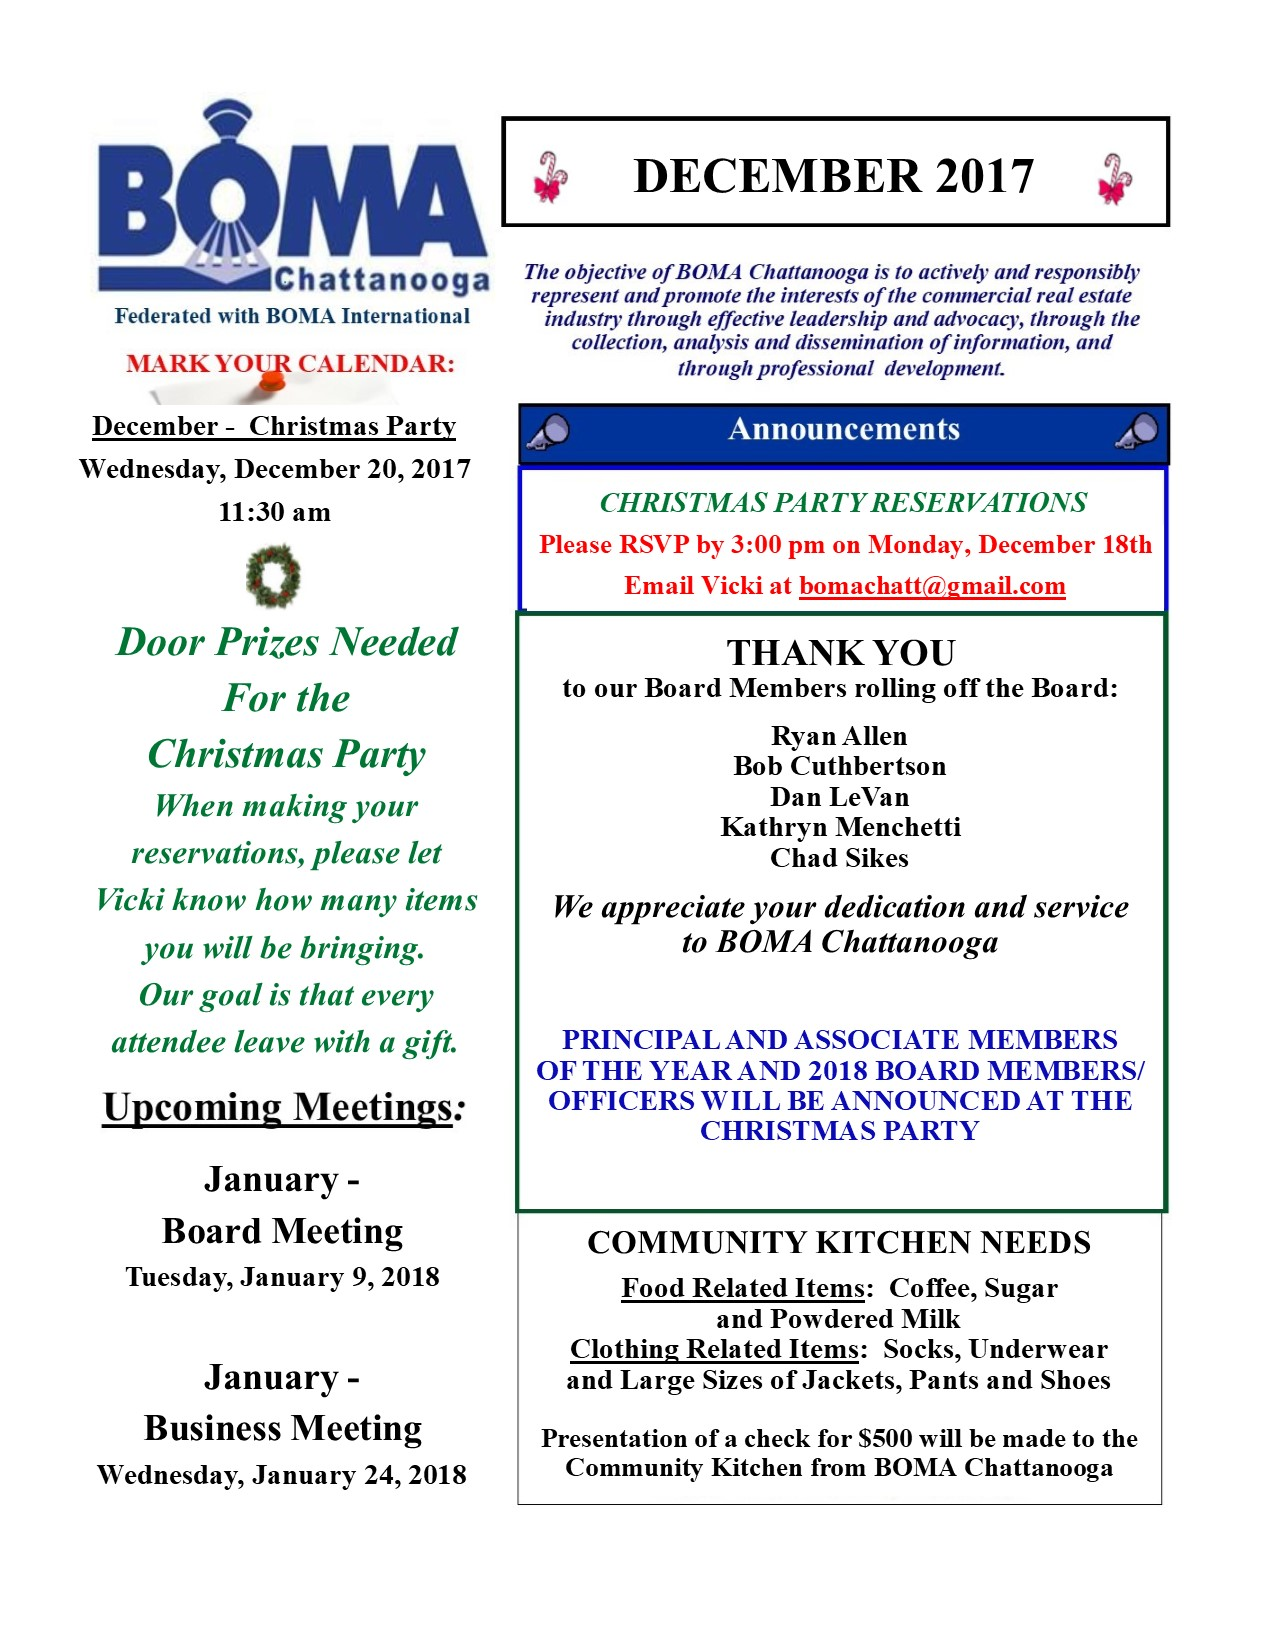 December 2017 Christmas Party Newsletter.jpg